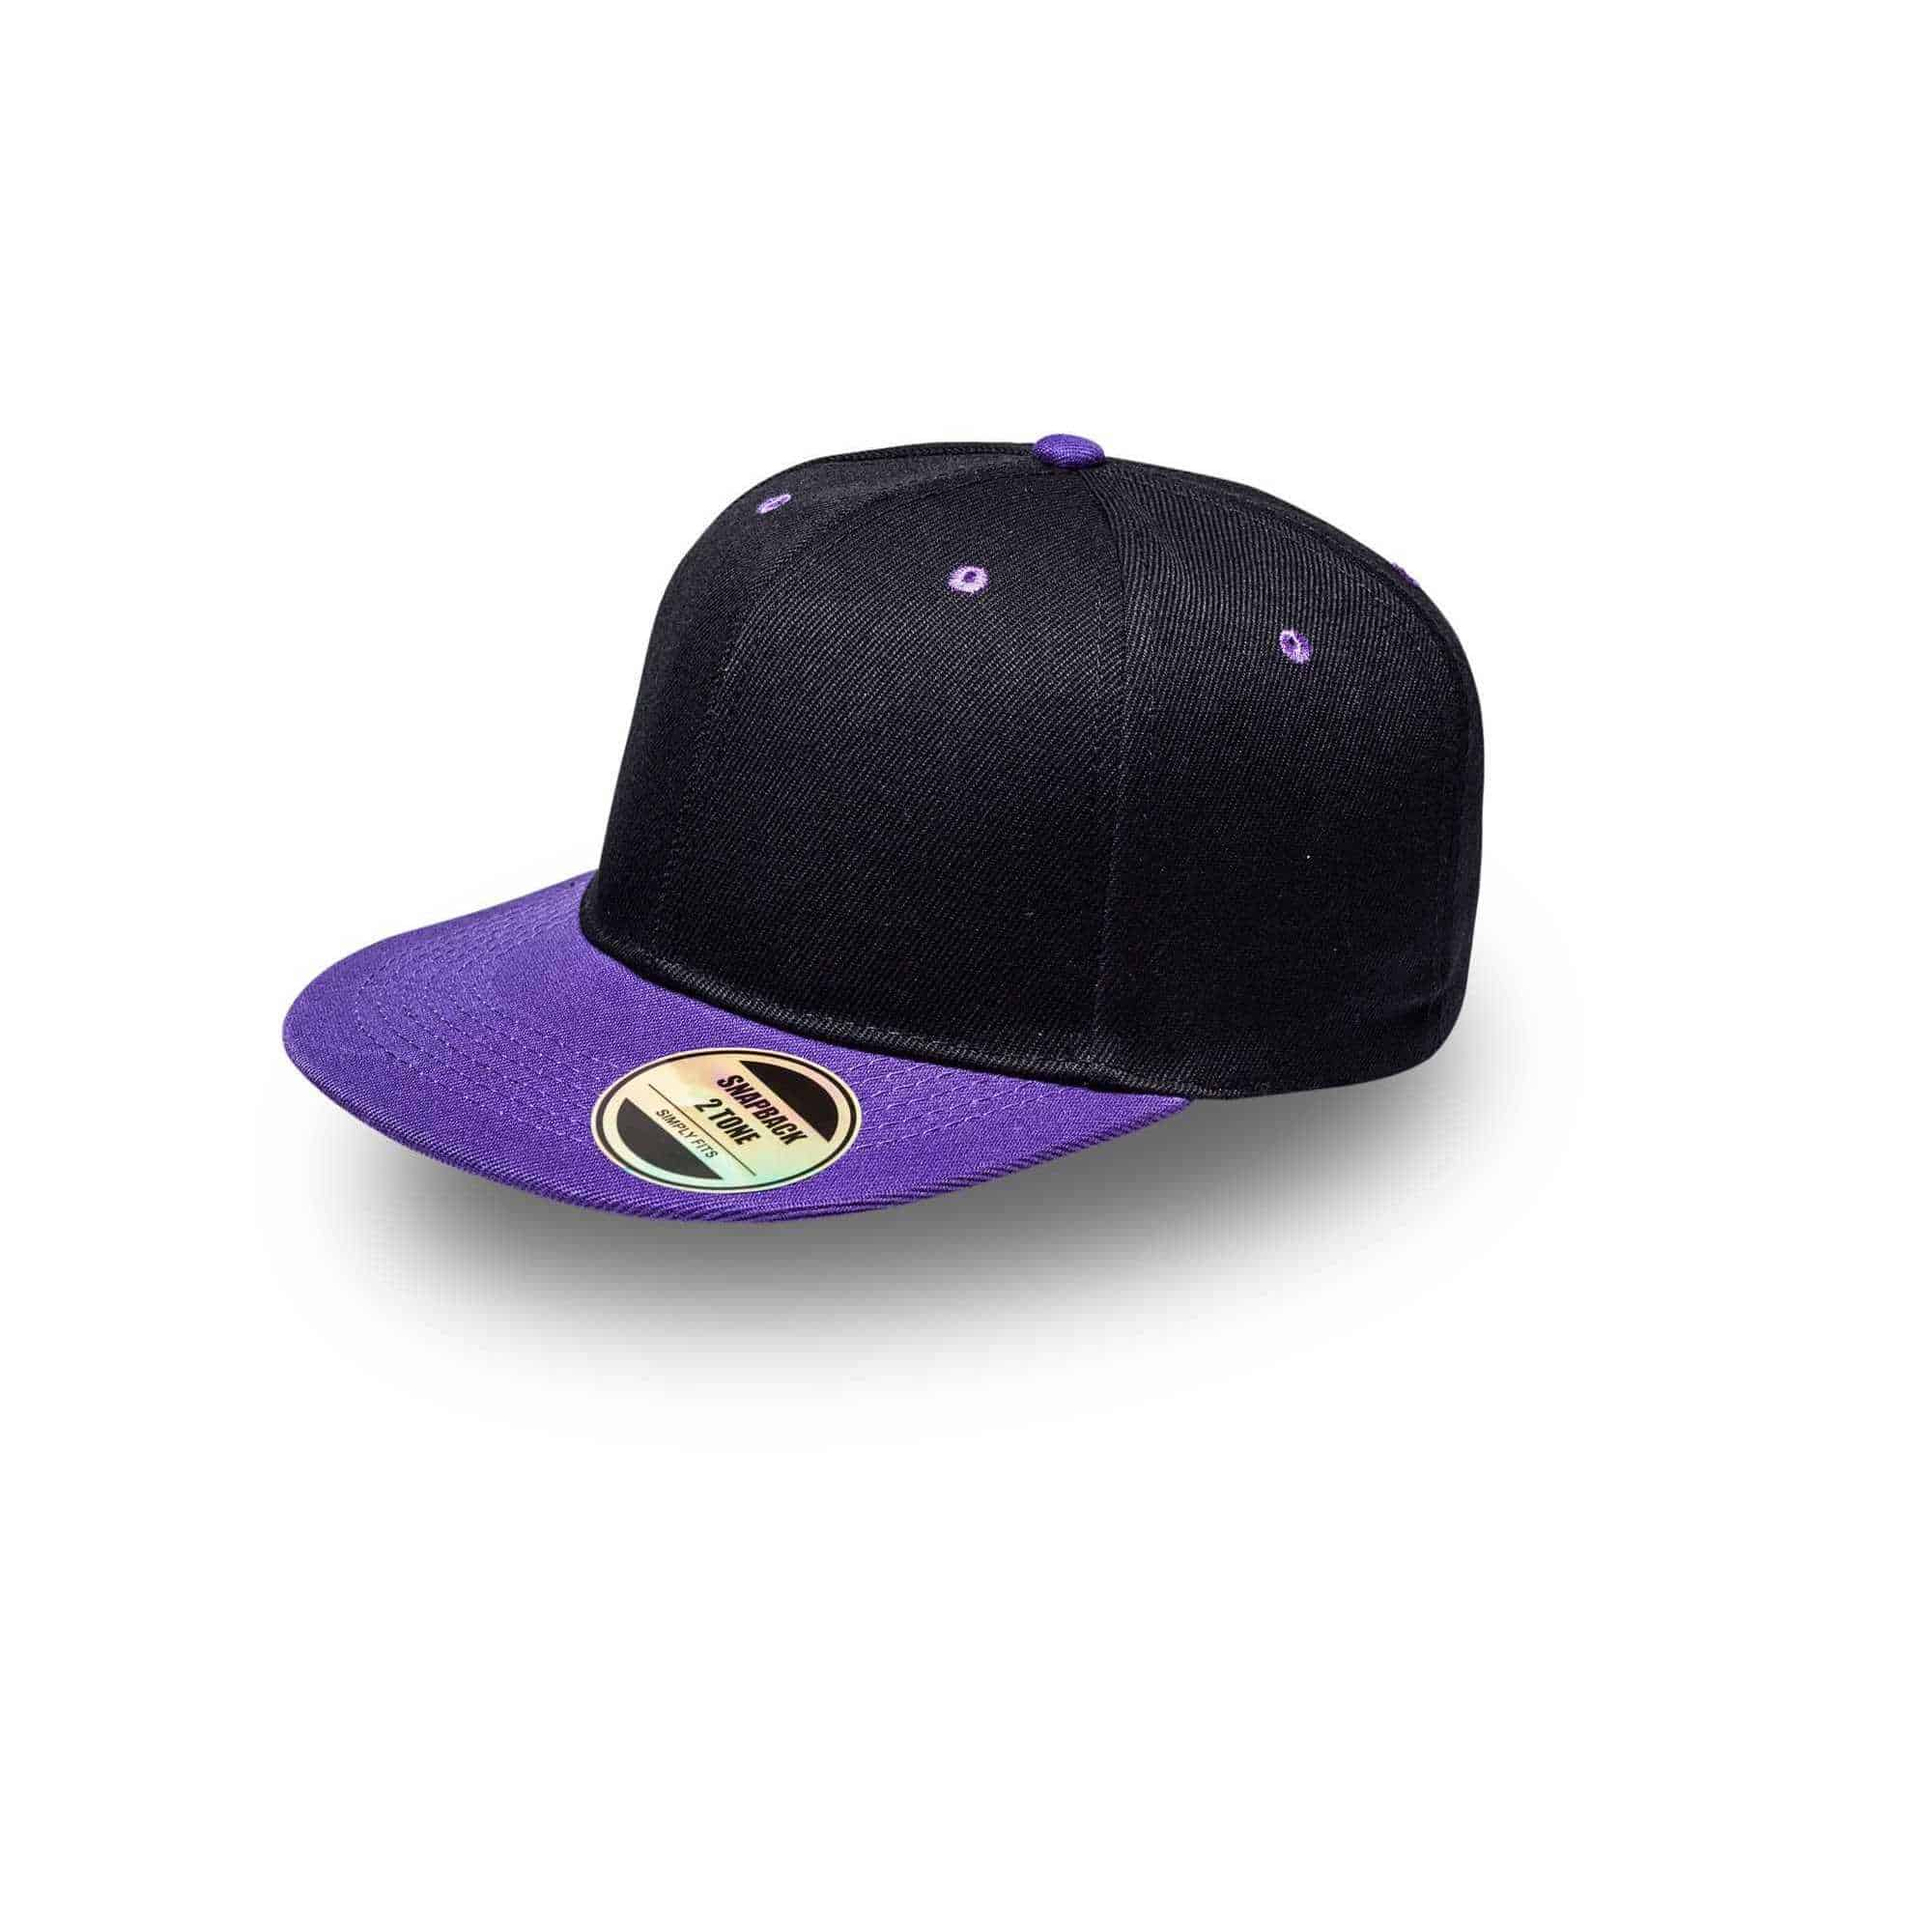 Snapback Two-Tone Headwear and Accessories